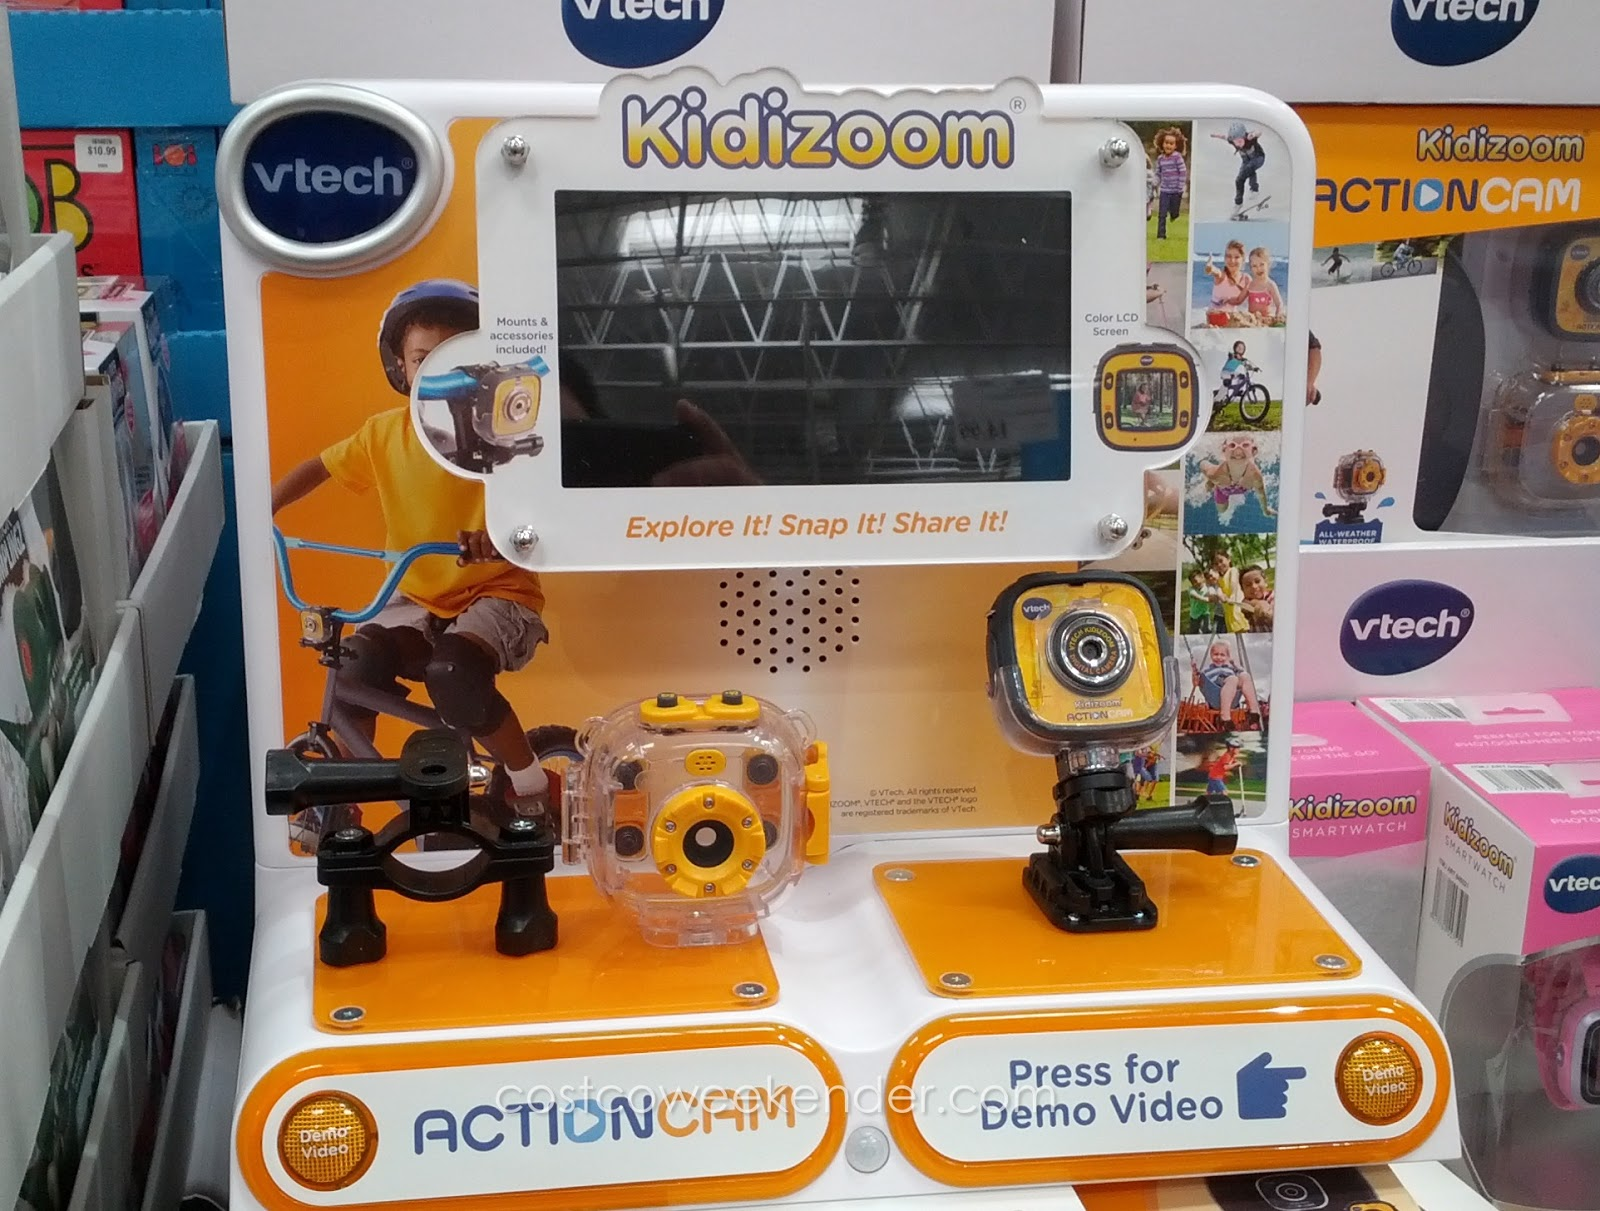 Record your child's active lifestyle with the VTech Kidizoom Action Cam